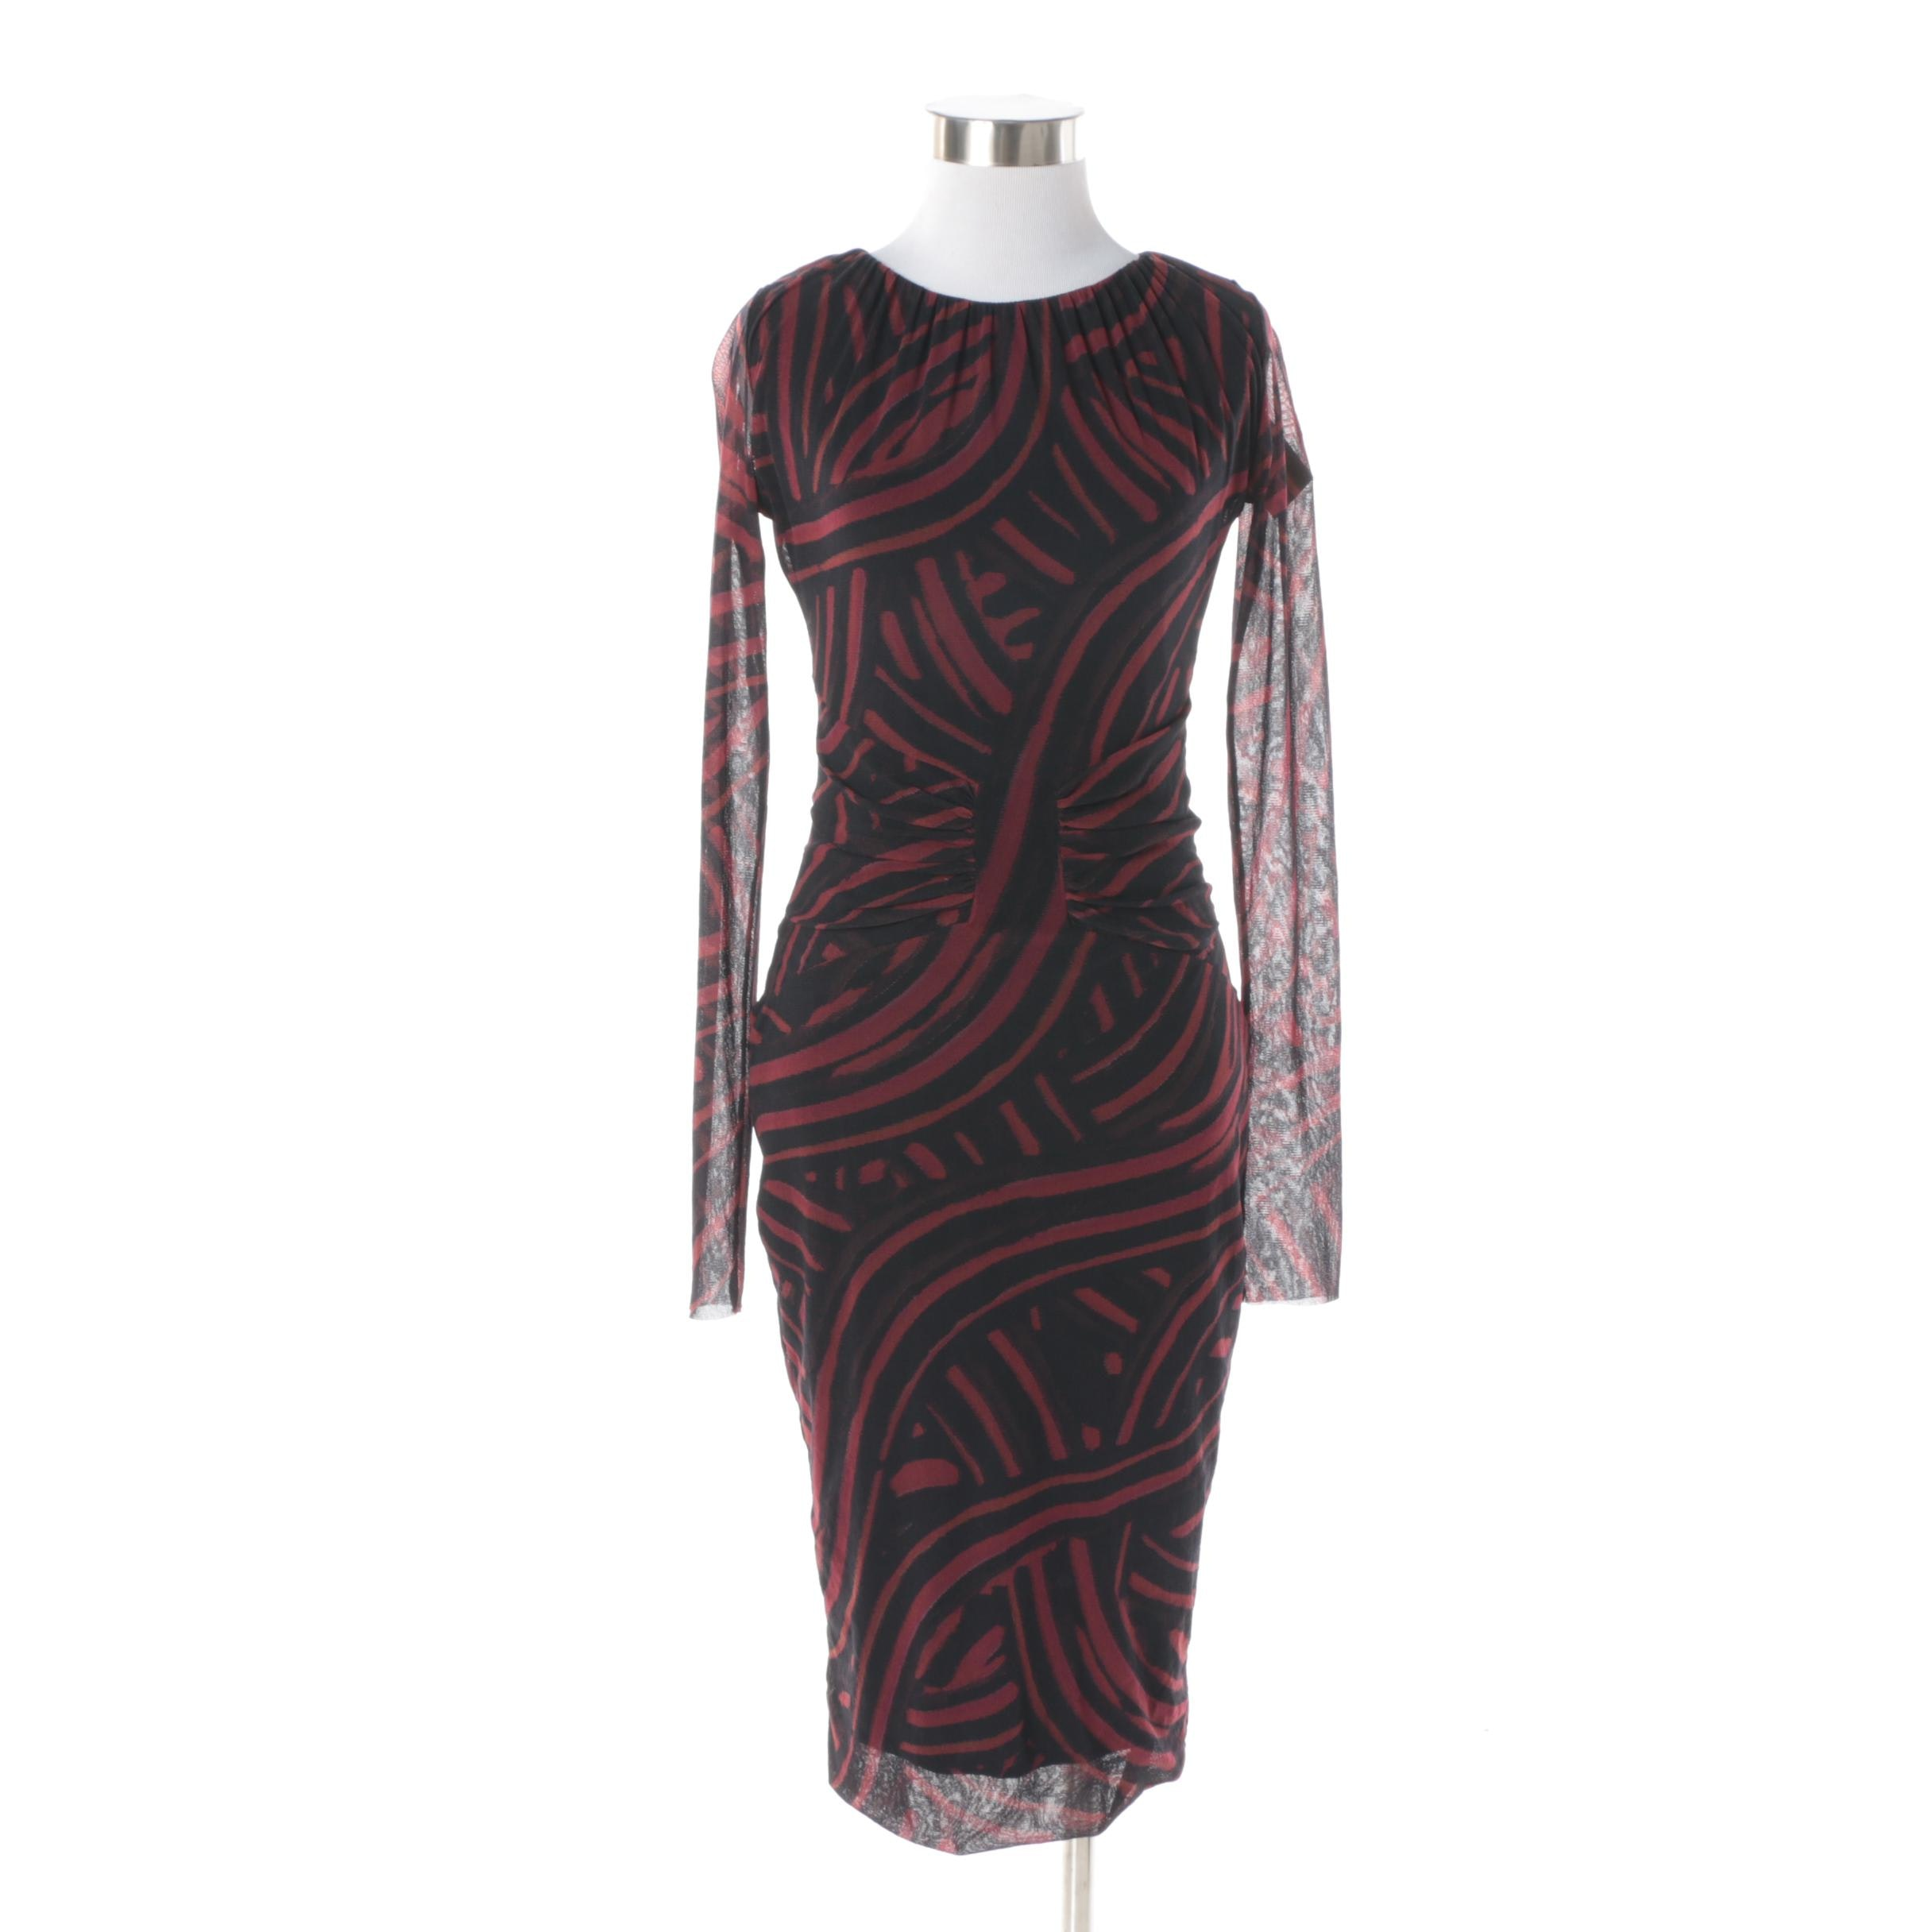 Fuzzi Burgundy and Black Pattern Cocktail Dress